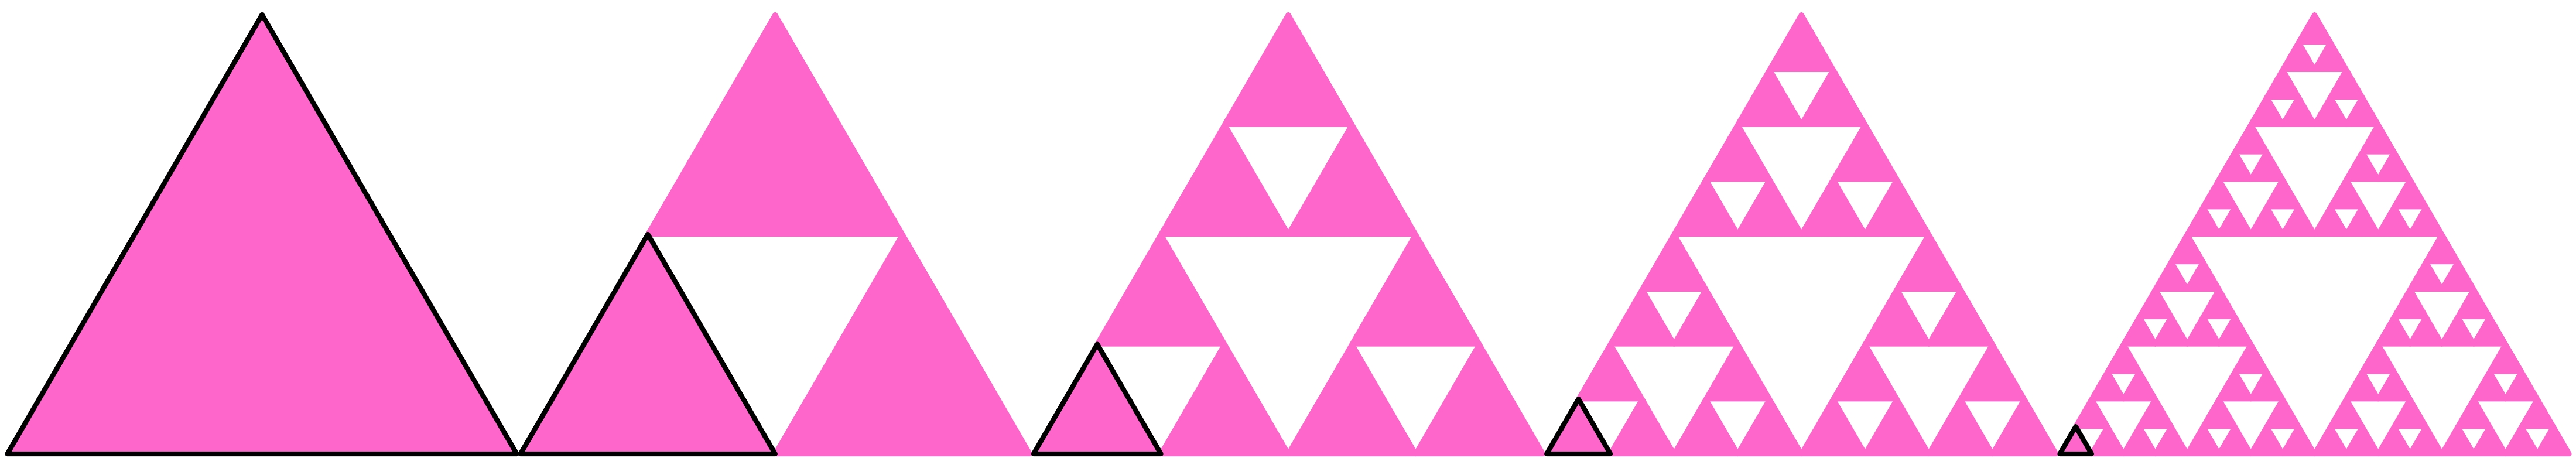 Worksheets Sierpinski Triangle Worksheet sierpinski triangle worksheet sharebrowse triangle